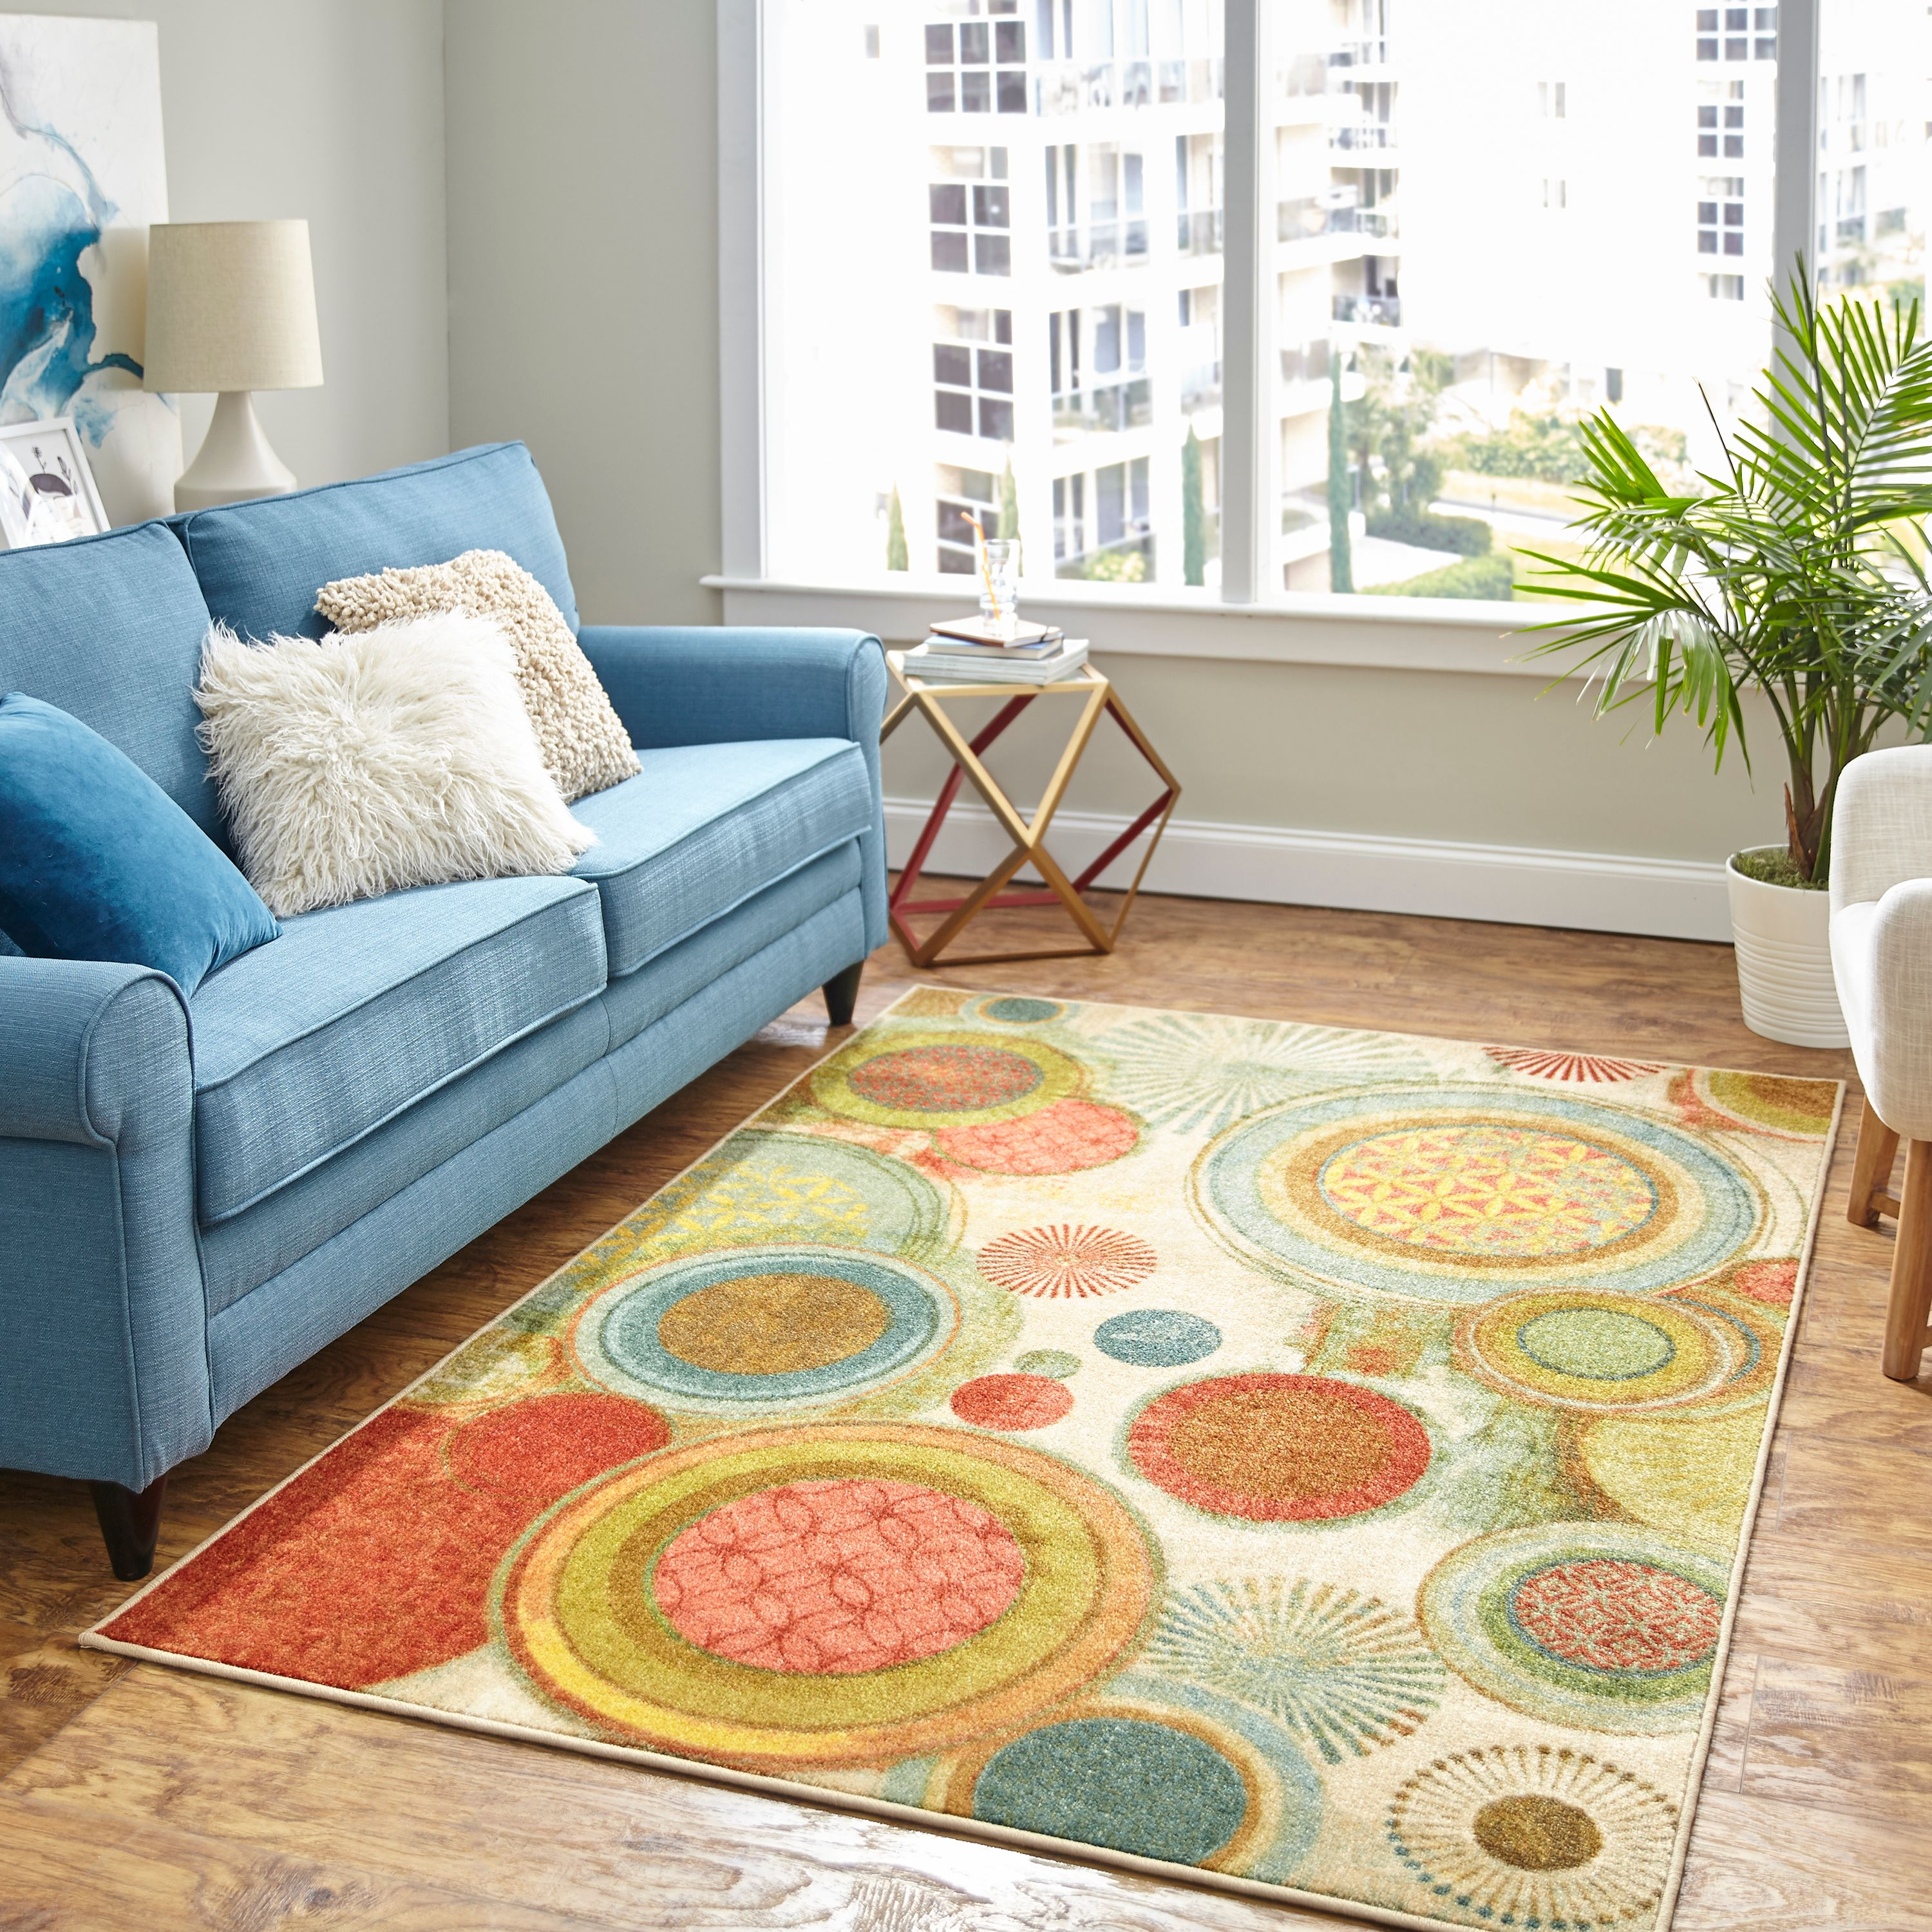 Mohawk Home Motion Printed Area Rug, Multicolor